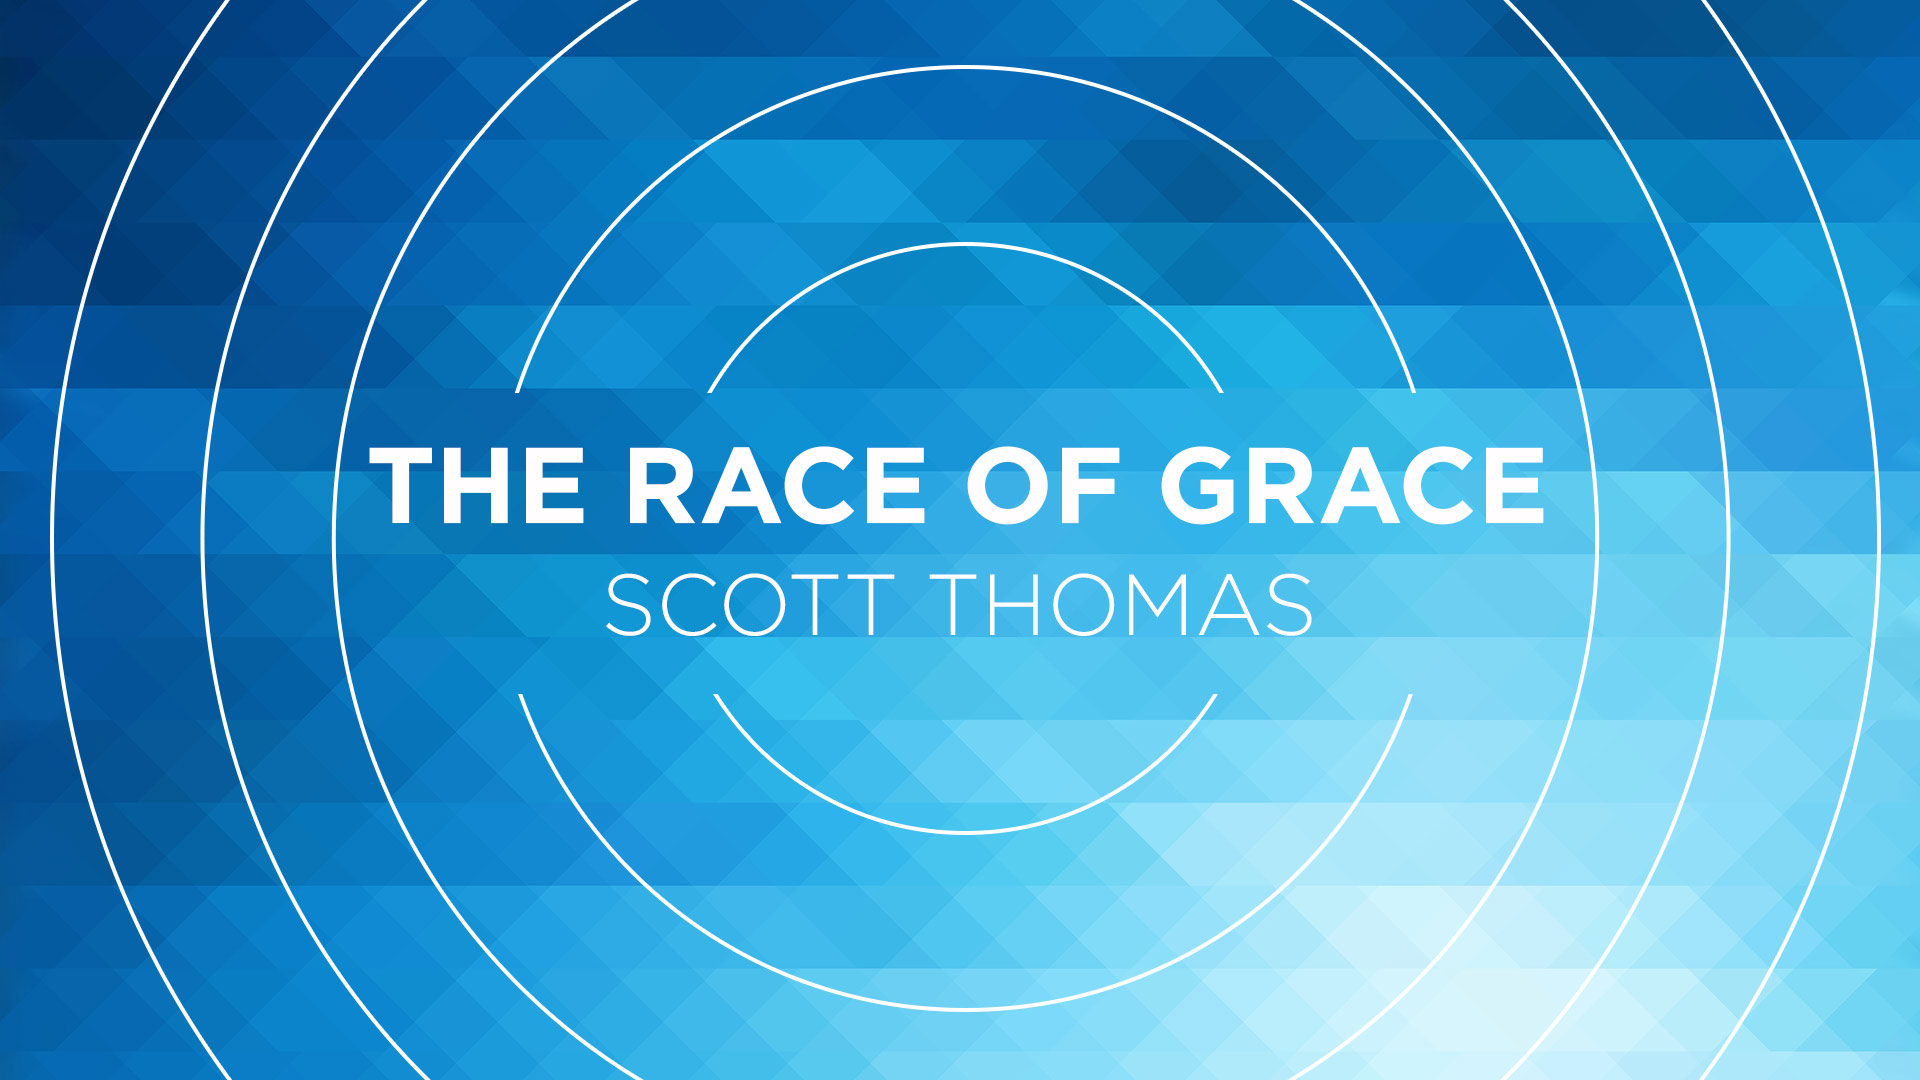 The Race of Grace